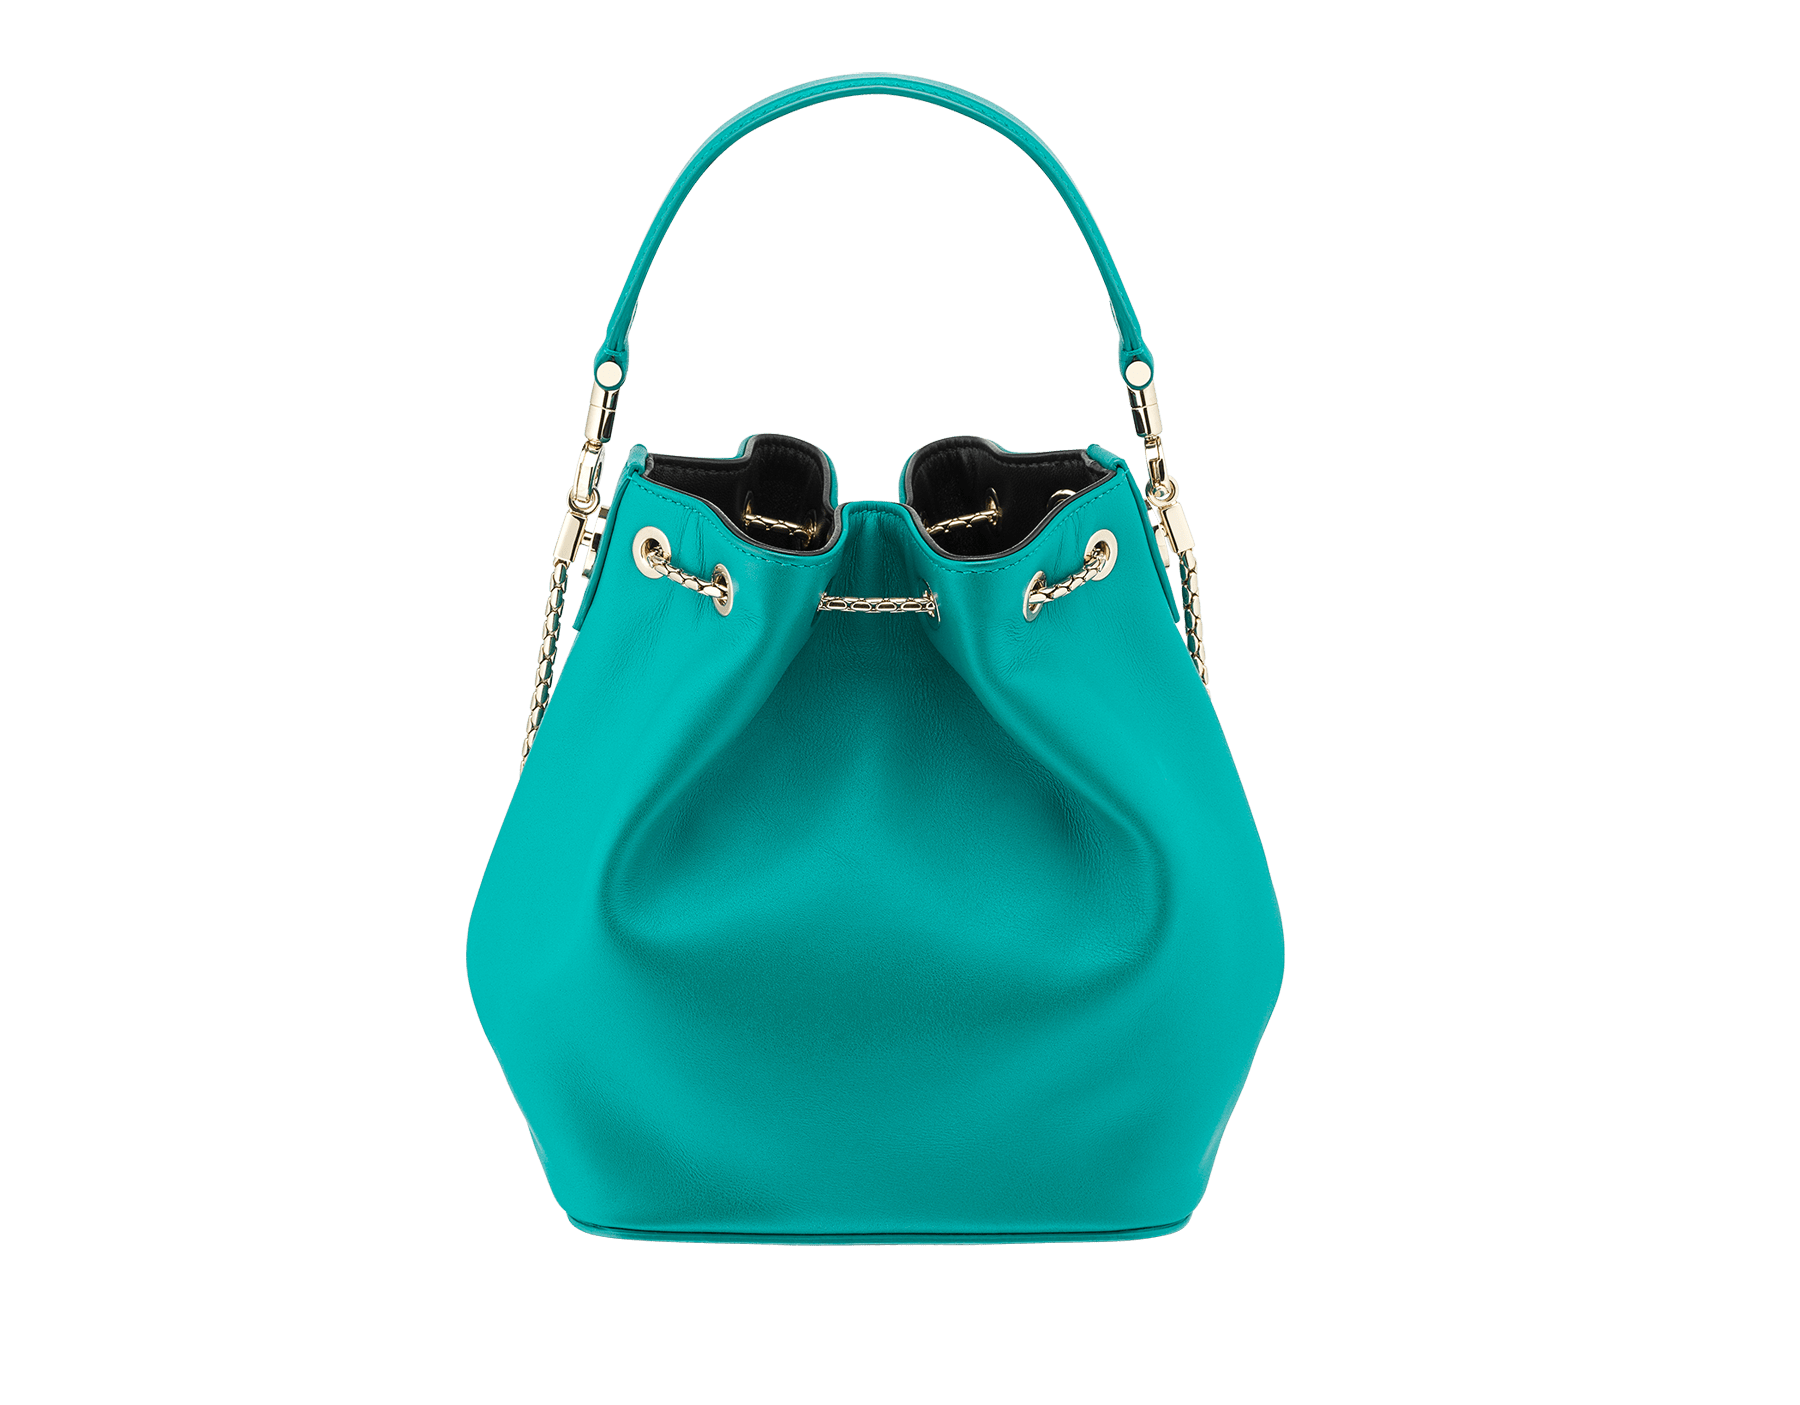 Serpenti Forever bucket bag in tropical turquoise smooth calf leather and black nappa inner lining. Snakehead closure in light gold plated brass decorated with black and white enamel, and black onyx eyes. 287981 image 3